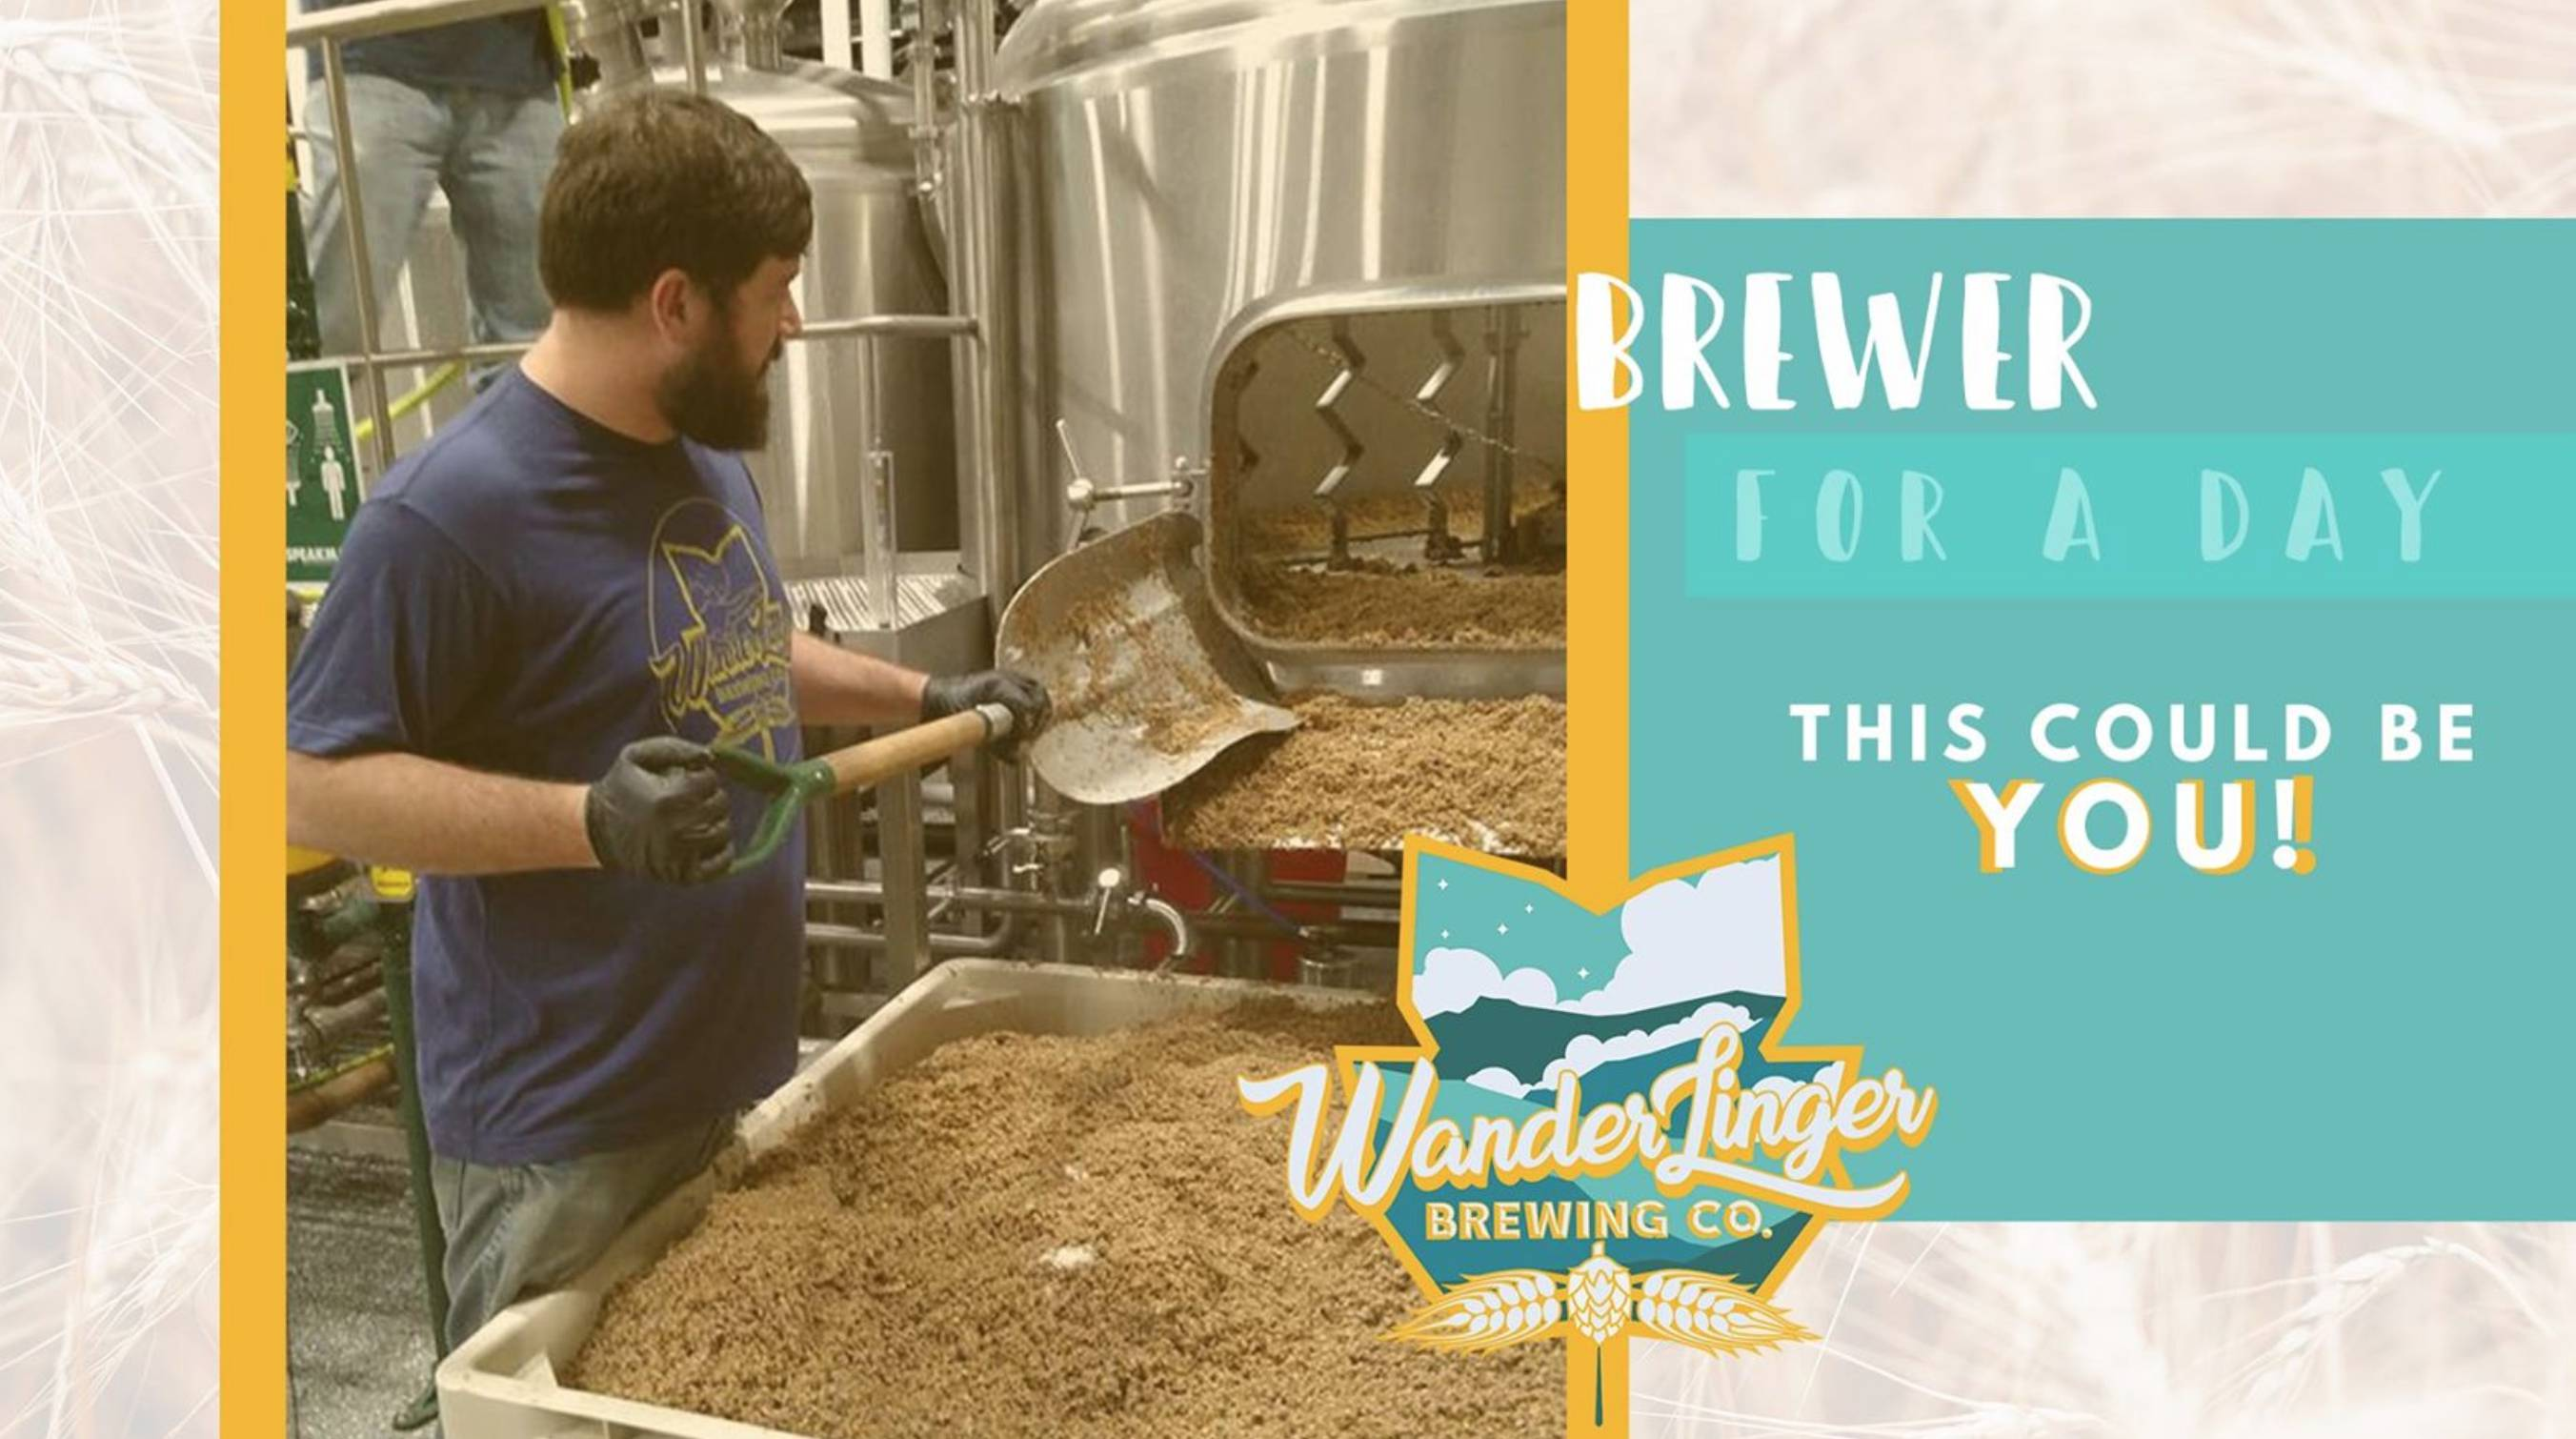 Brewer for a Day at Wanderlinger